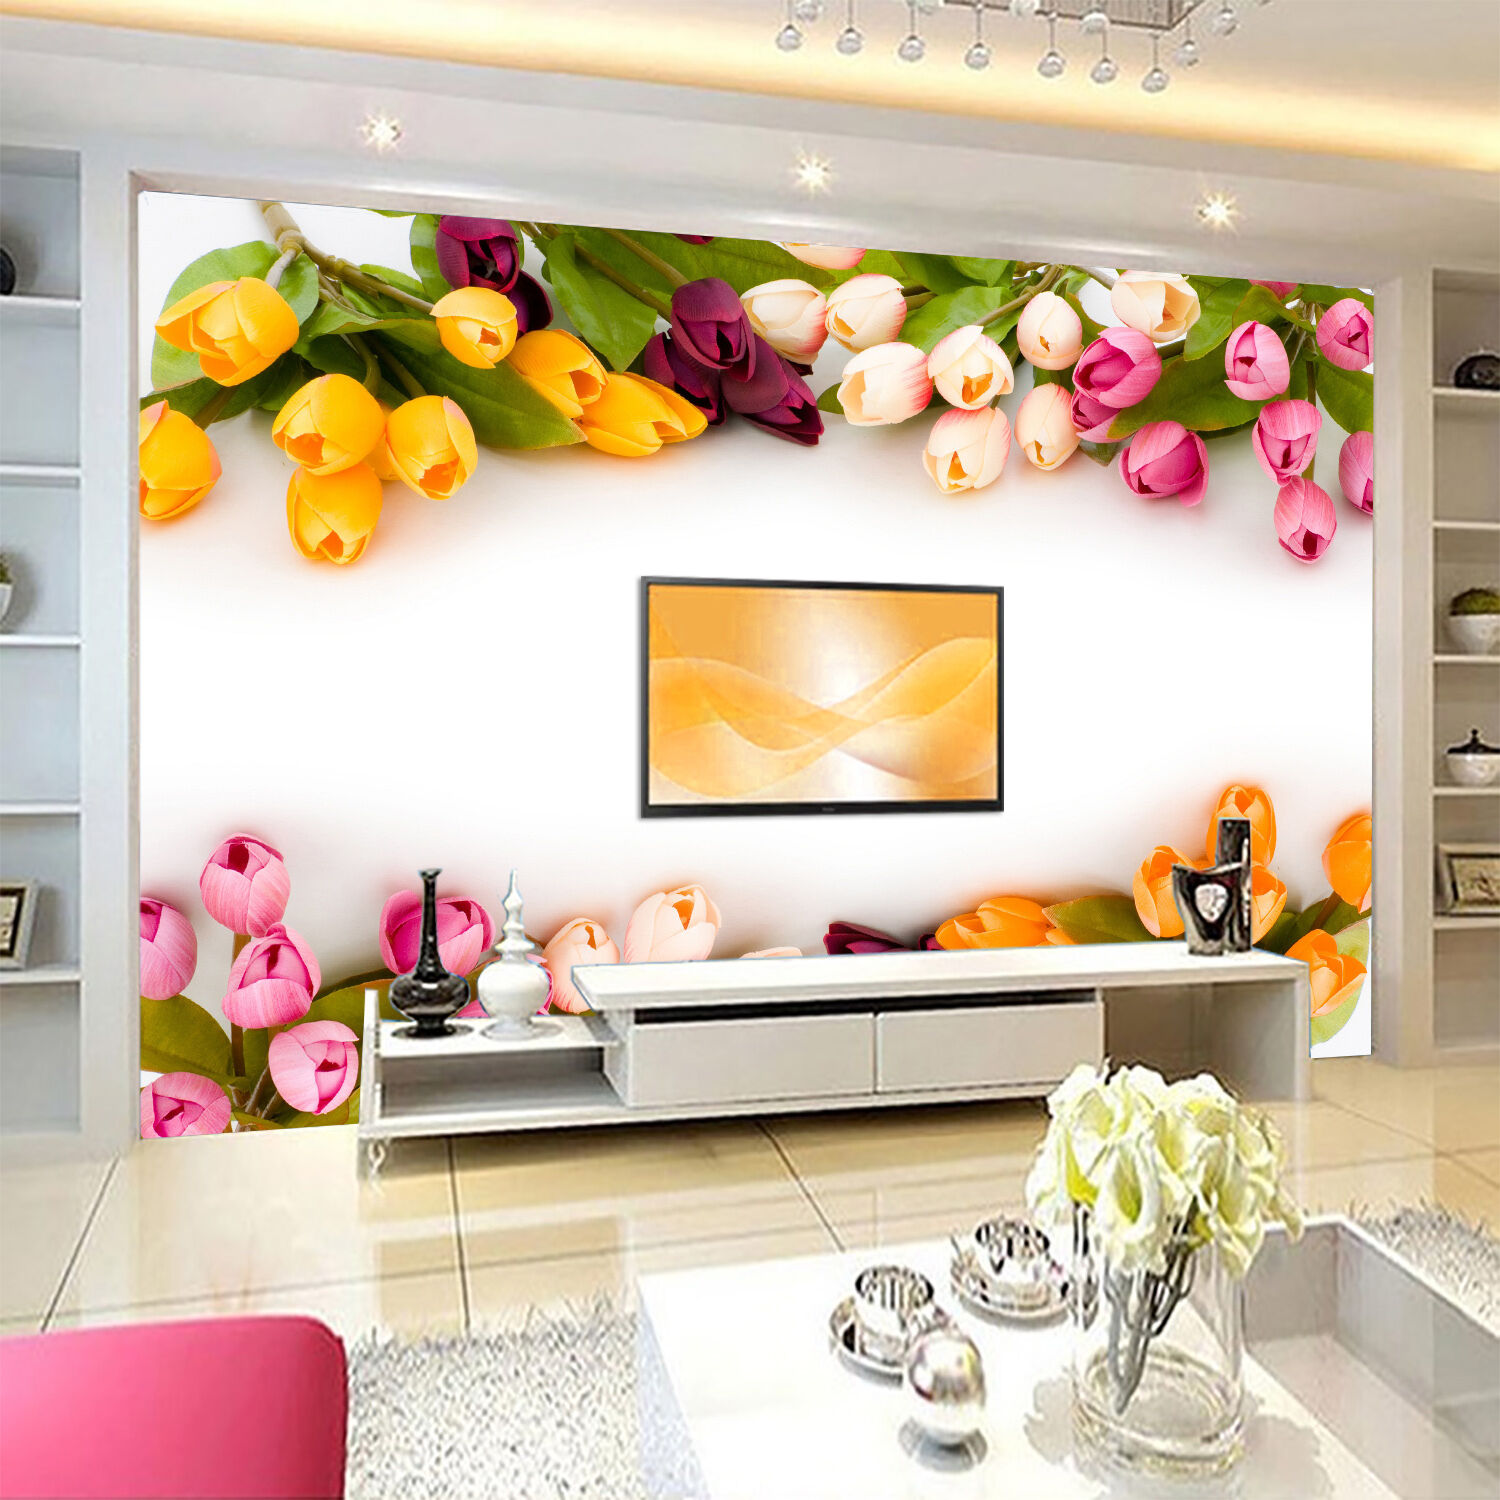 3D Farbeful Tulip Flowers 21 Paper Wall Print Wall Decal Wall Deco Indoor Murals